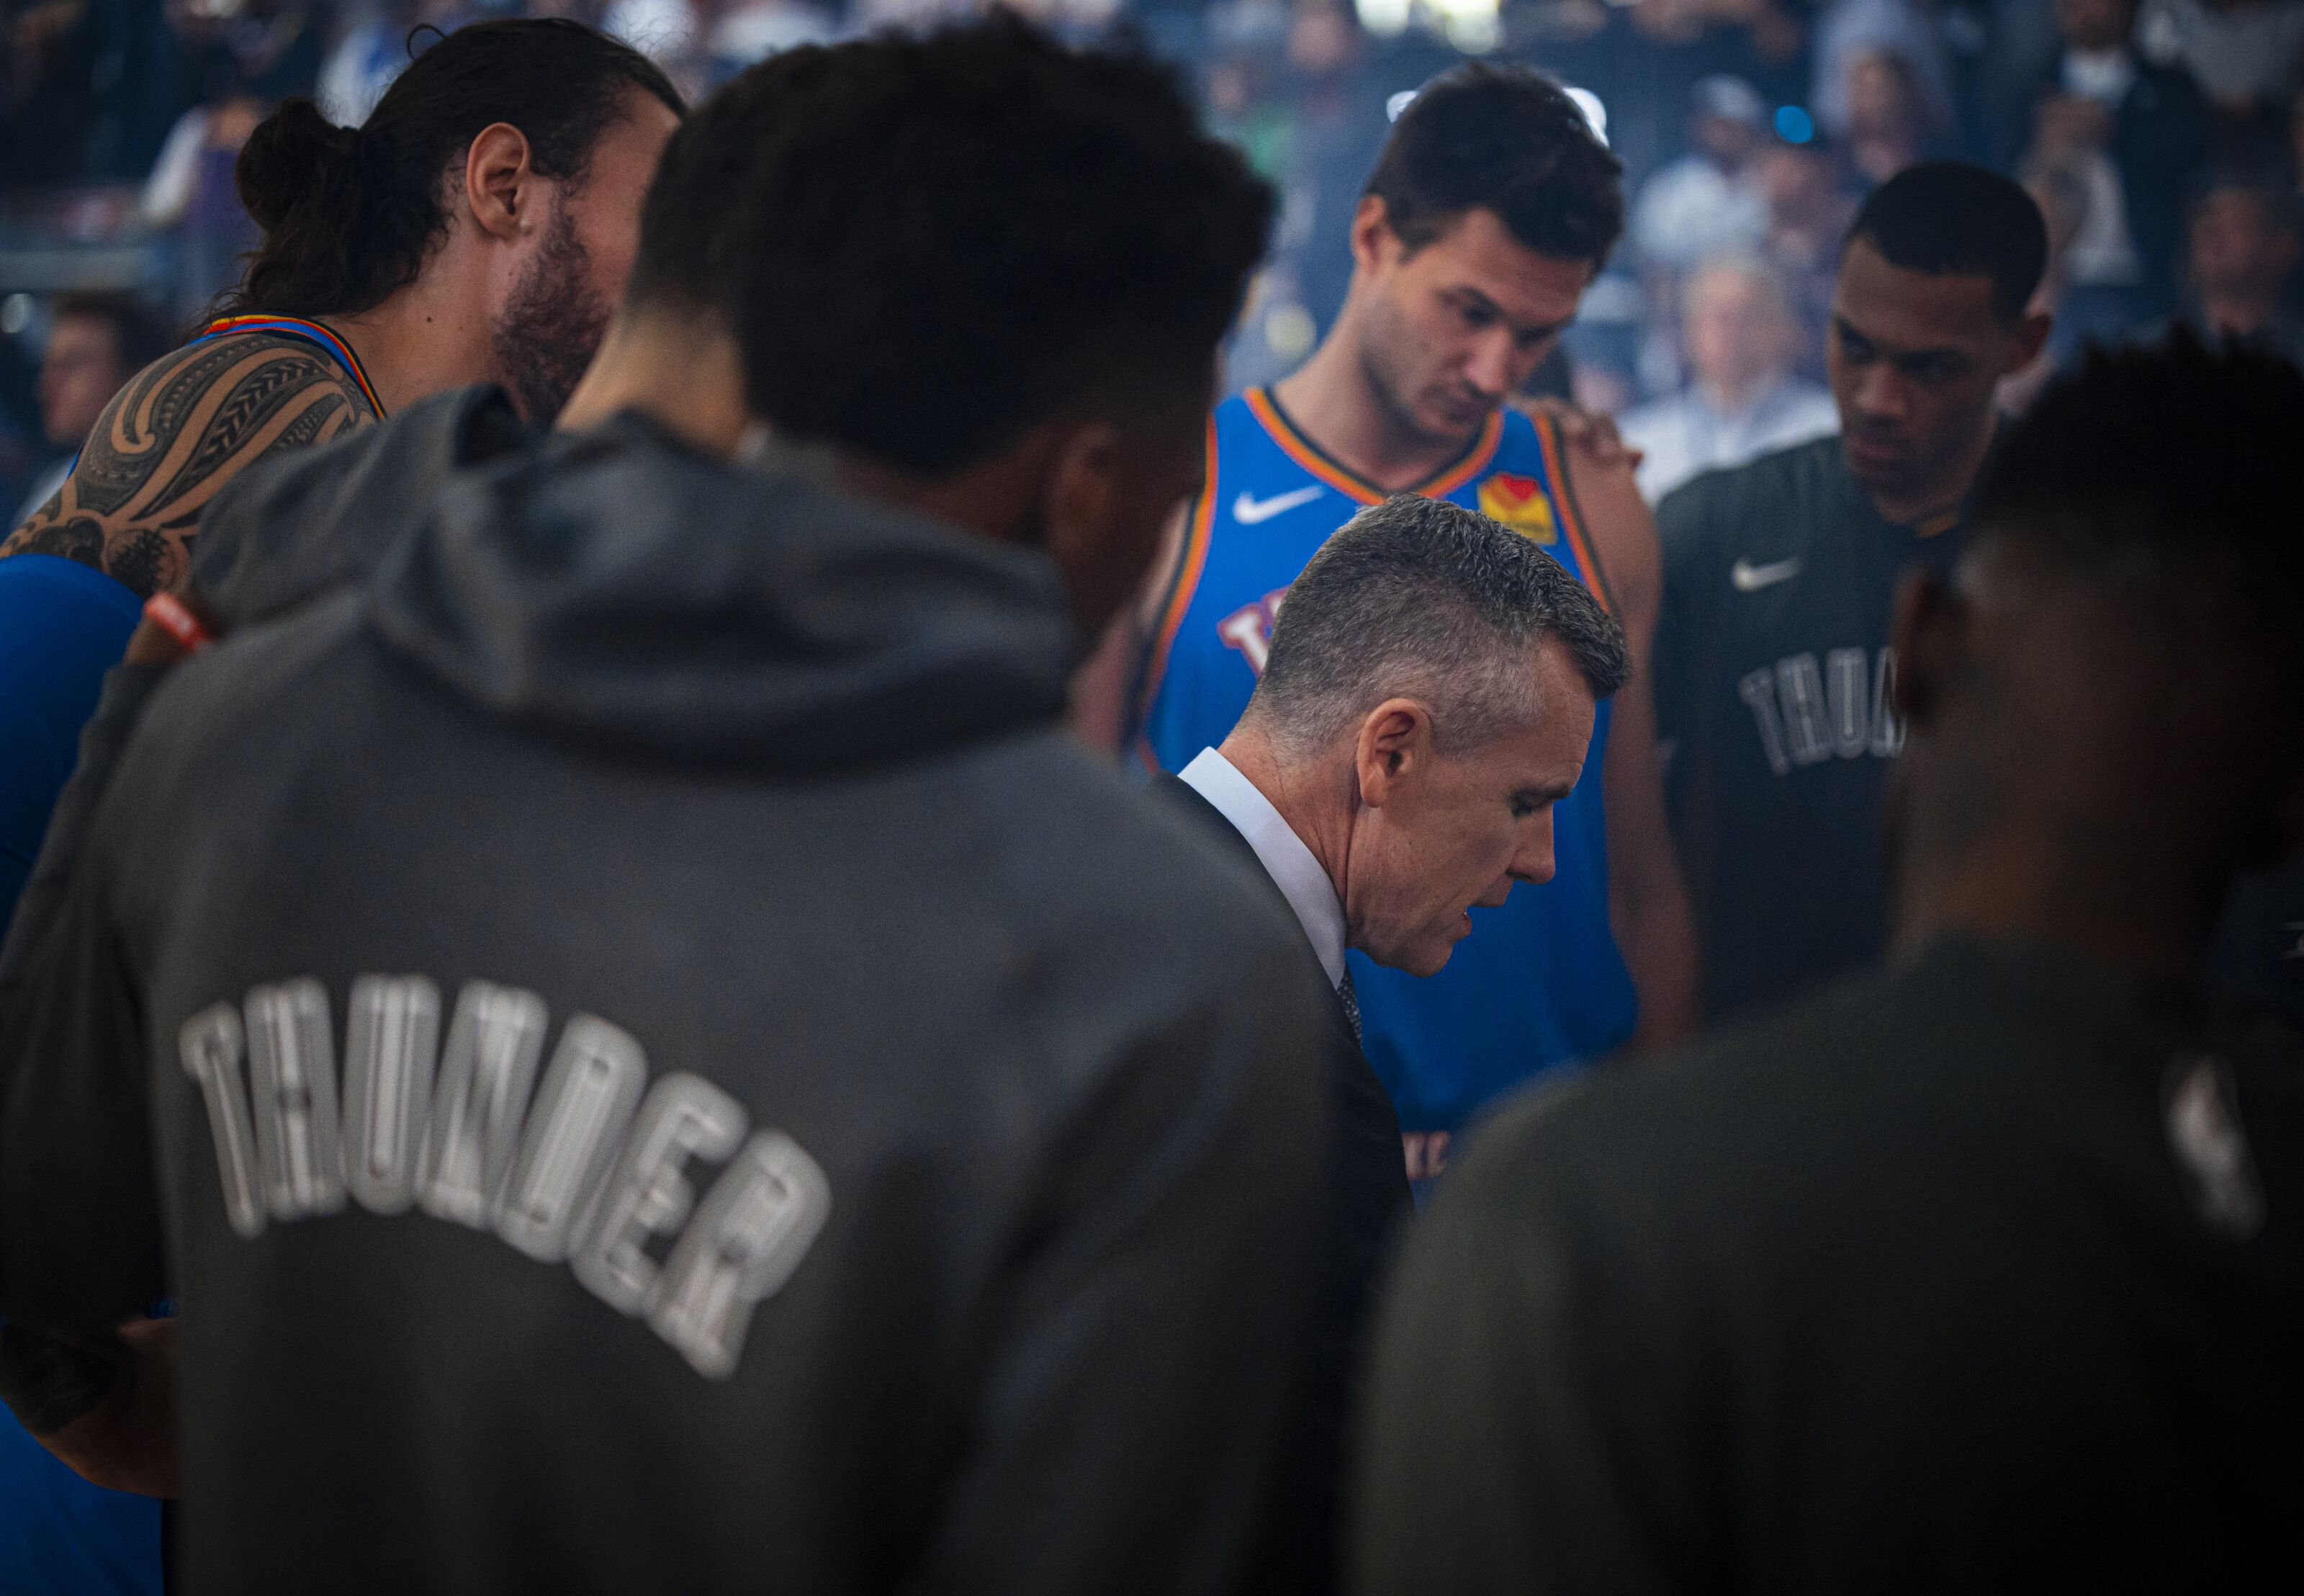 OKC Thunder use insight over eyesight and live in the moment